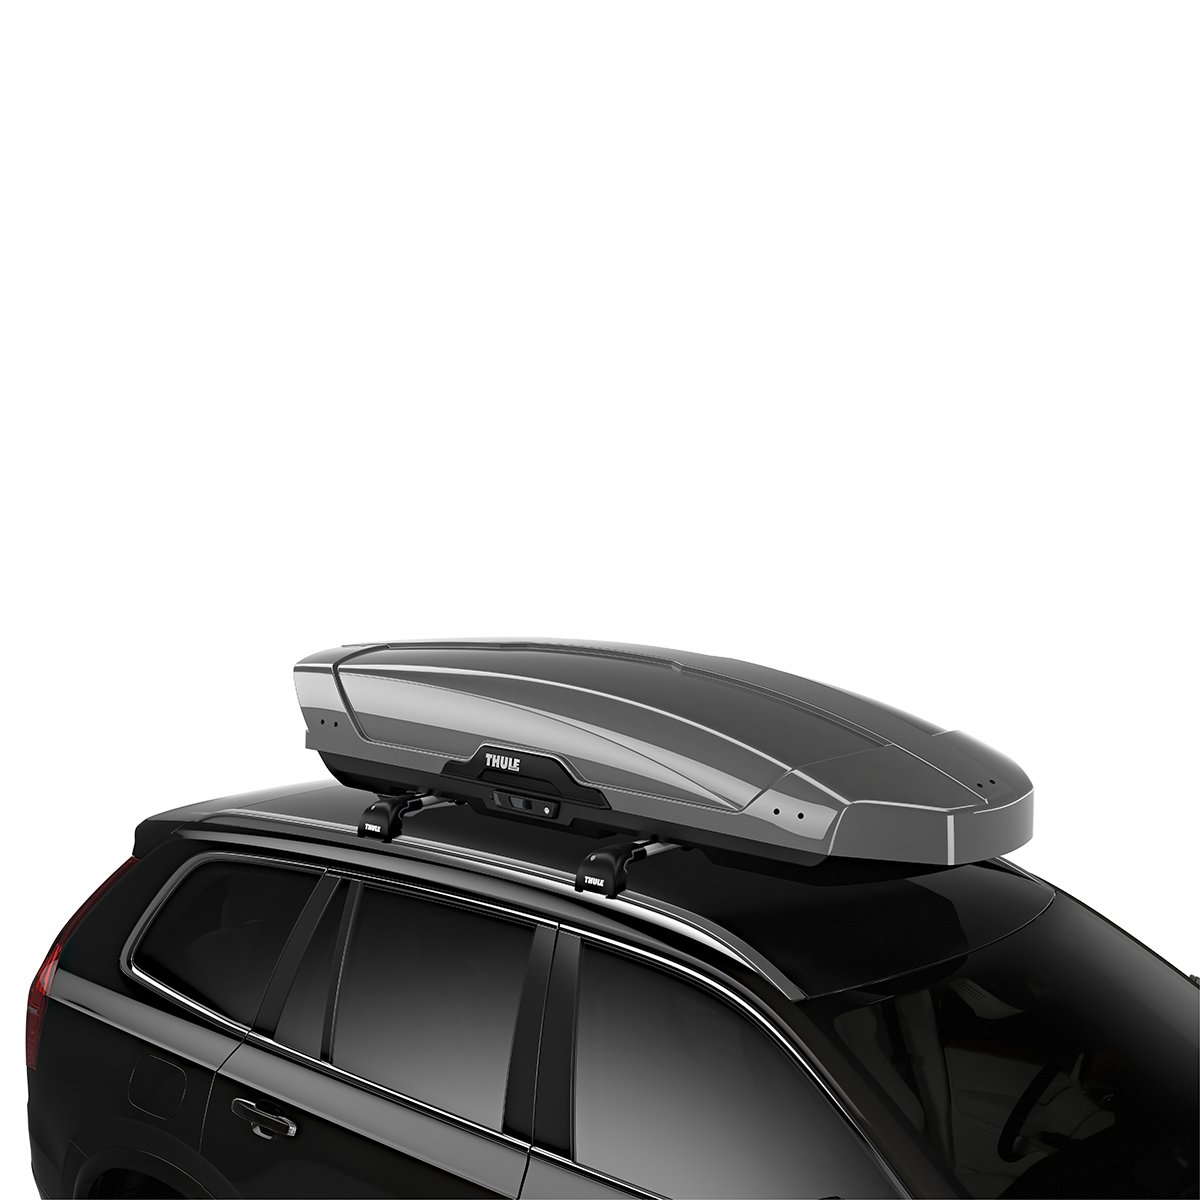 Thule Motion Xt Xl 800 Roof Box